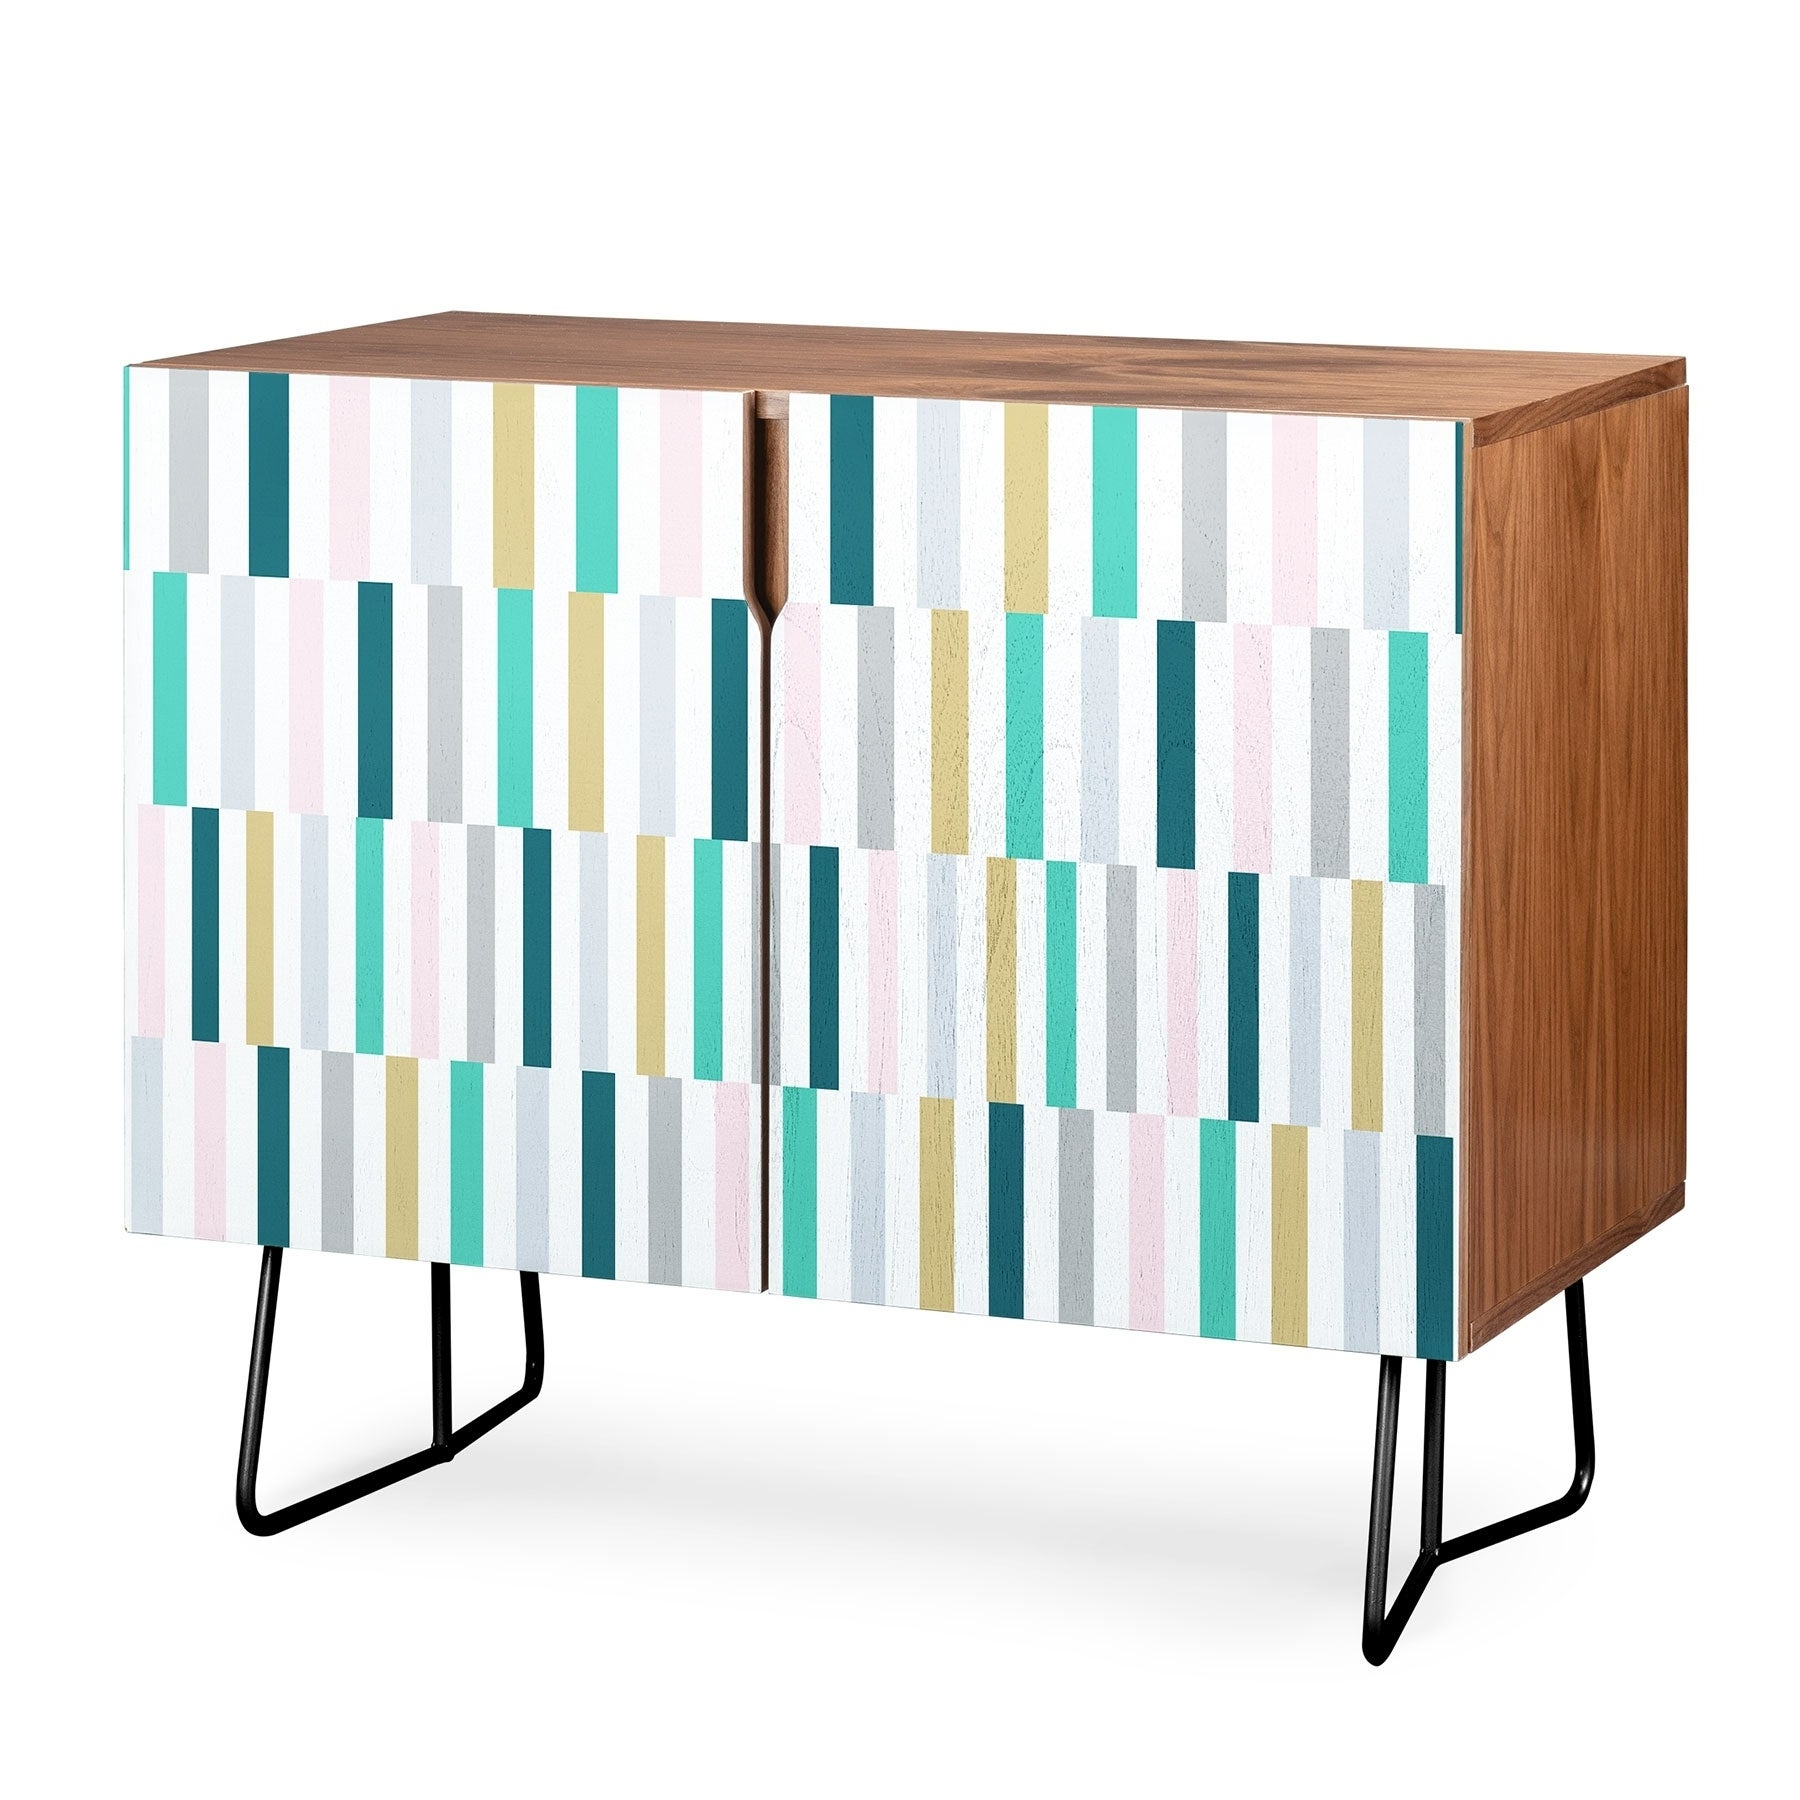 Deny Designs Scandi Stripes Credenza (Birch Or Walnut, 2 Leg Options) Within Festival Eclipse Credenzas (View 8 of 20)